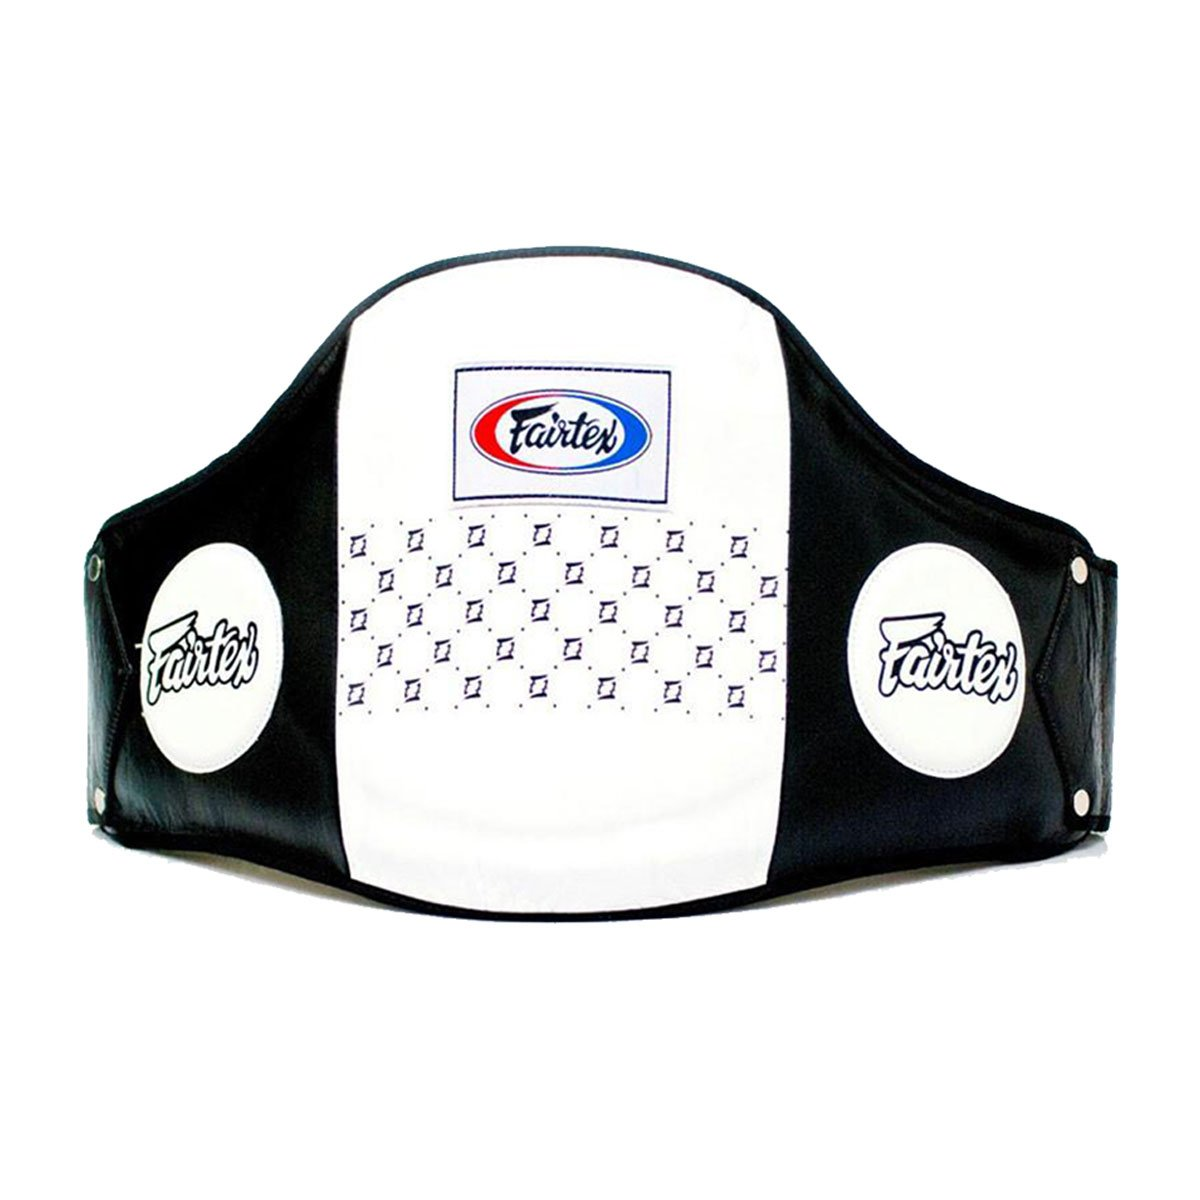 Fairtex Leather Belly Pad, Black/White, One Size Ringside Inc. BPAD3 BK/WH